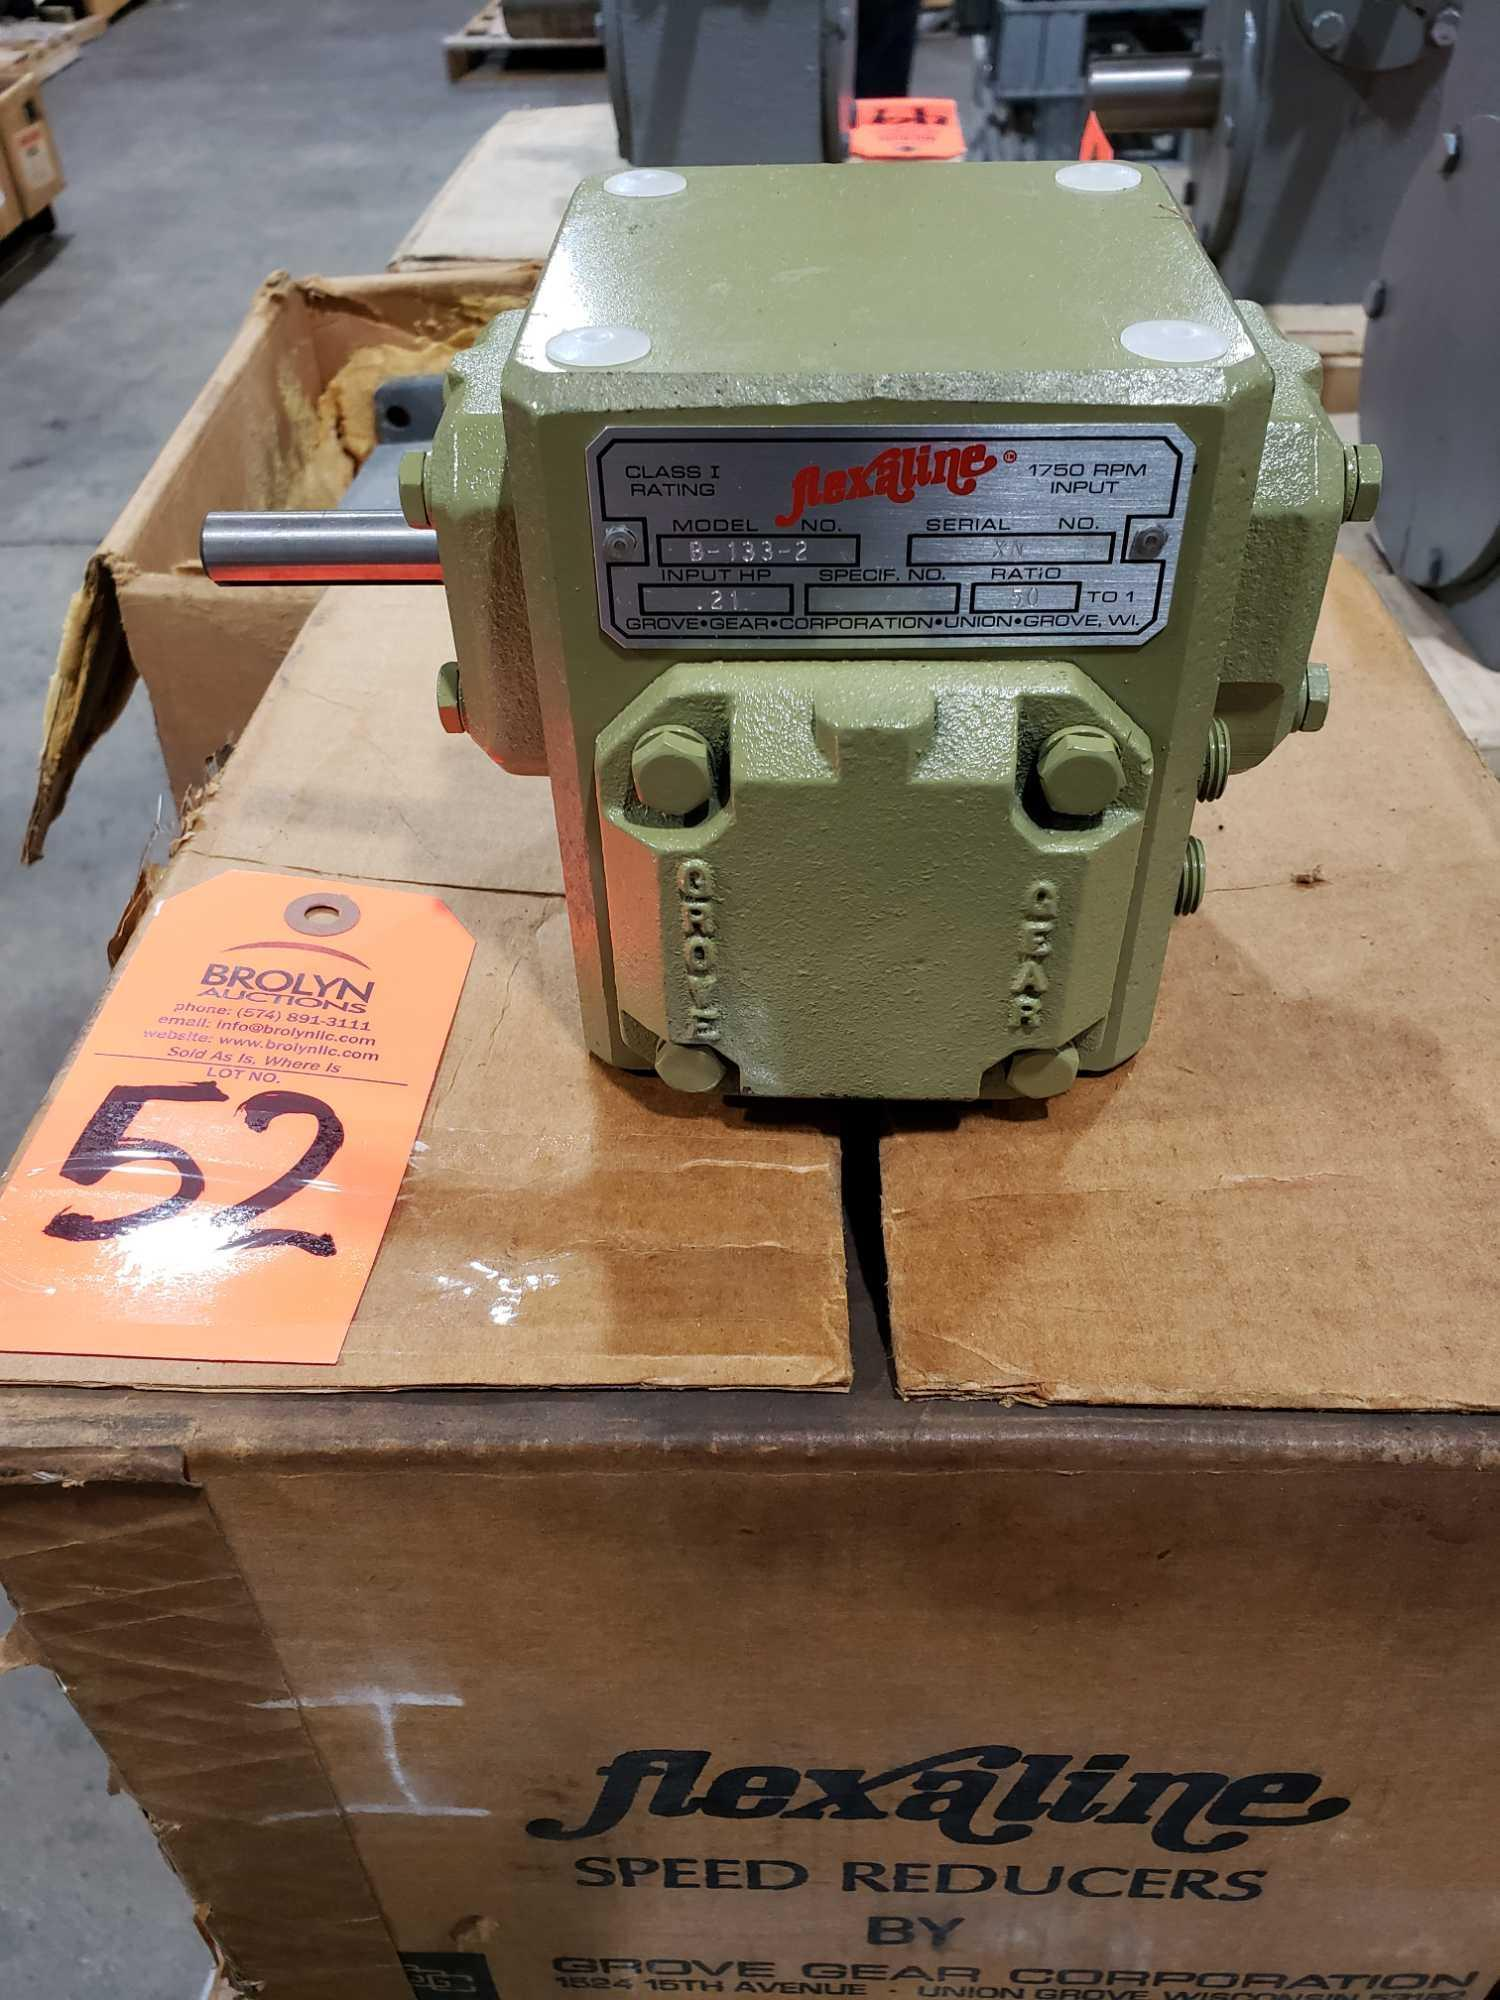 Lot 52 - Grove Gear Flexaline model B-133-2 gear box, ratio 50:1. New in box.